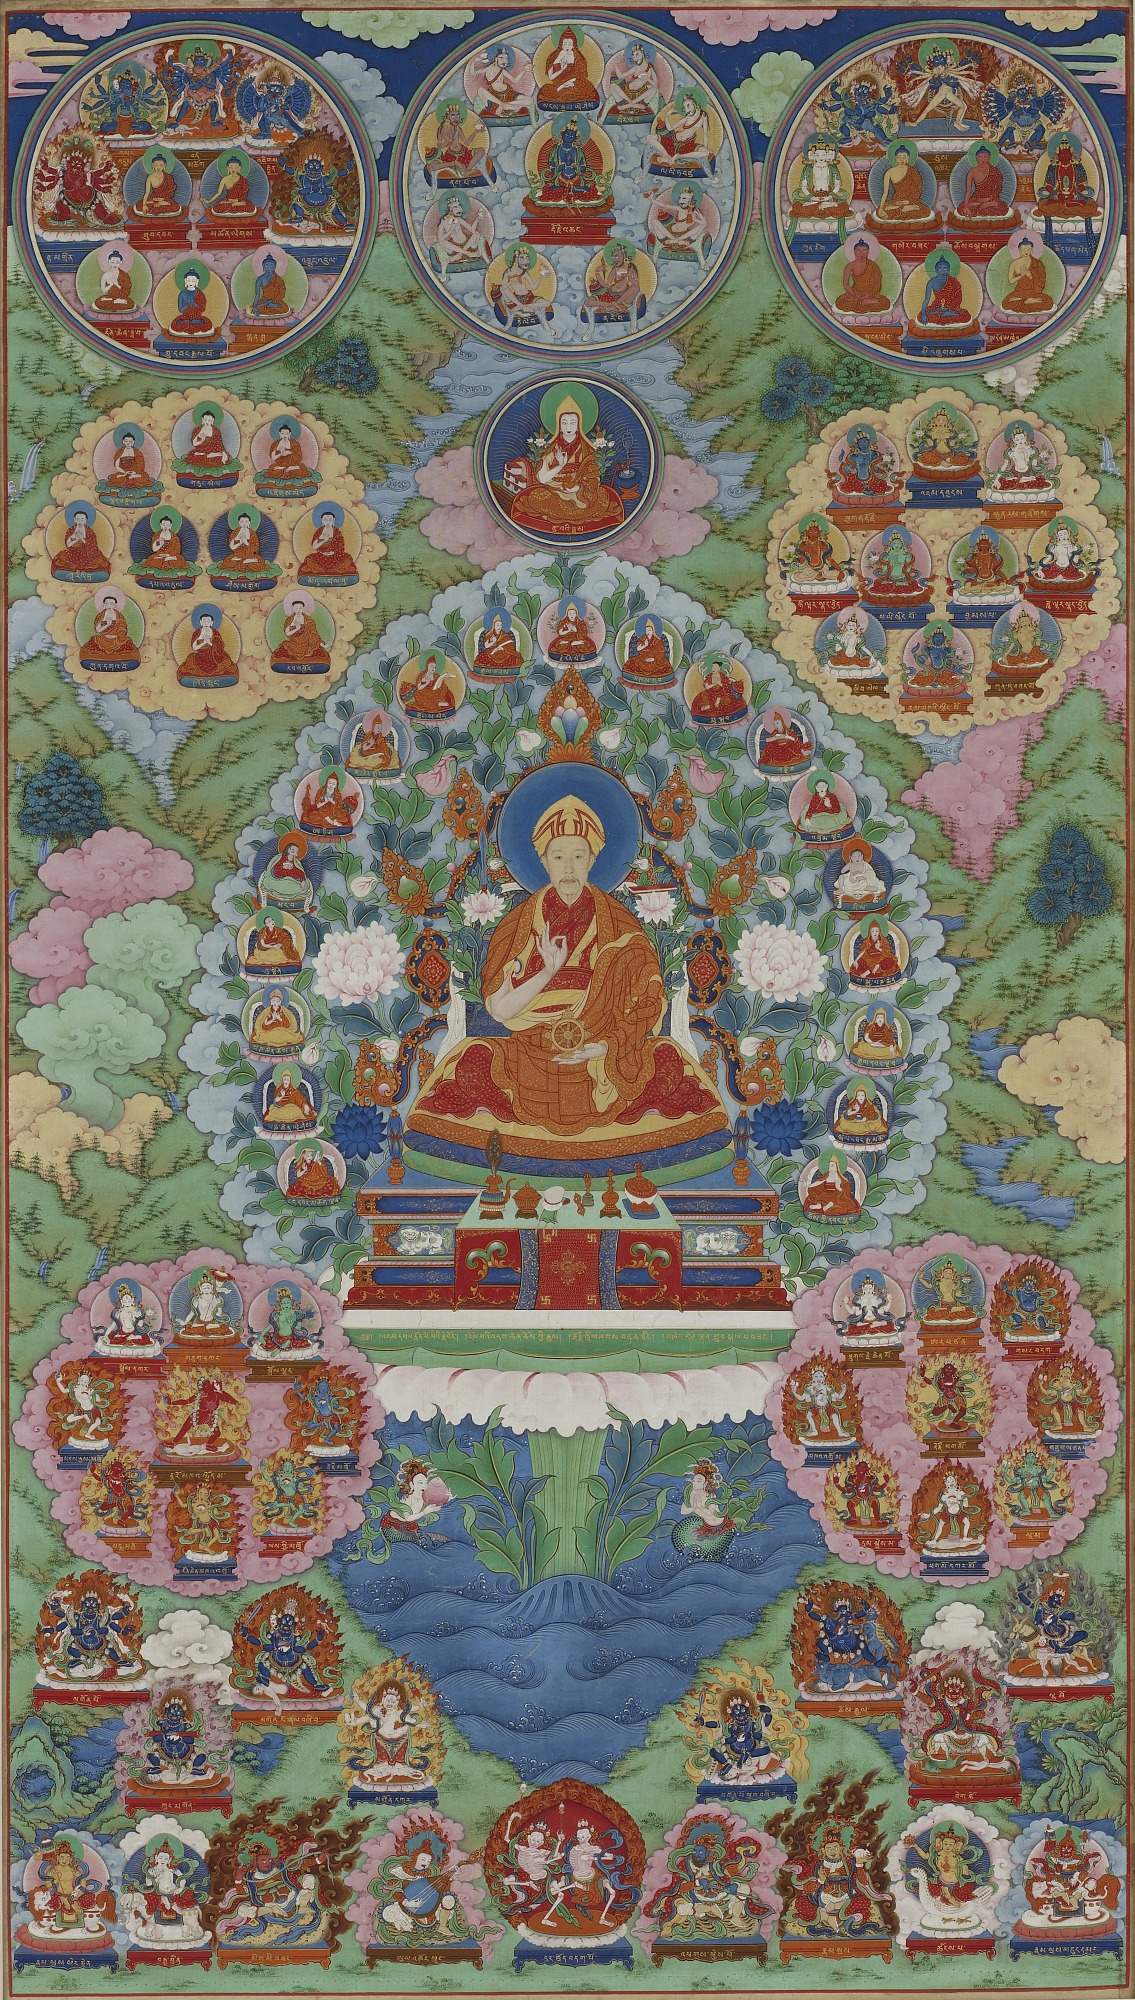 : The Qianlong Emperor as Manjushri, the Bodhisattva of Wisdom